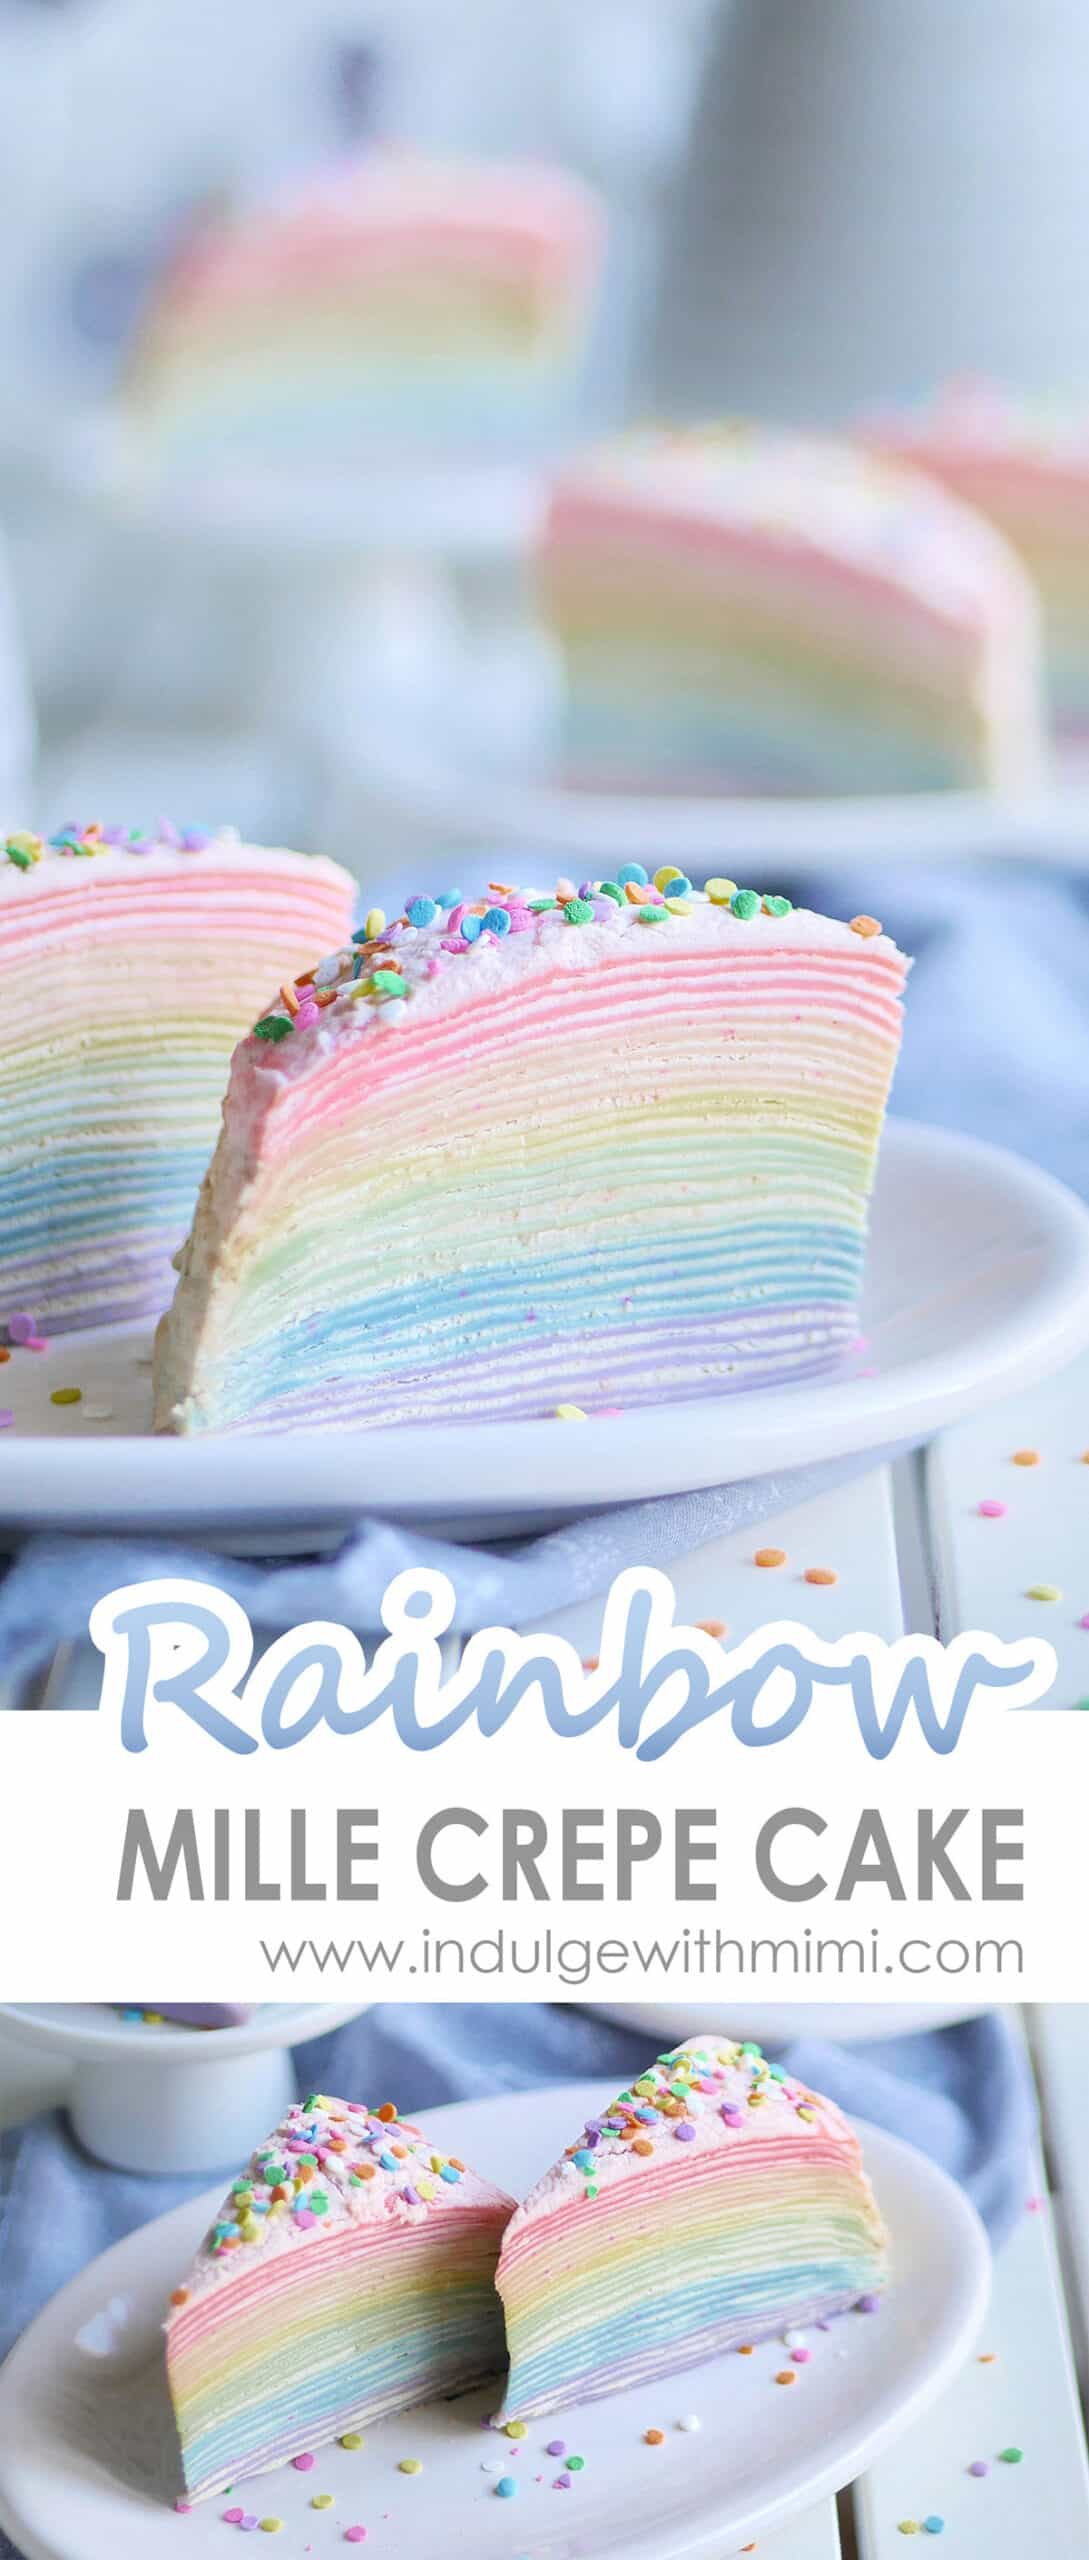 Rainbow crepe cakes on a plate with some slices in the back.